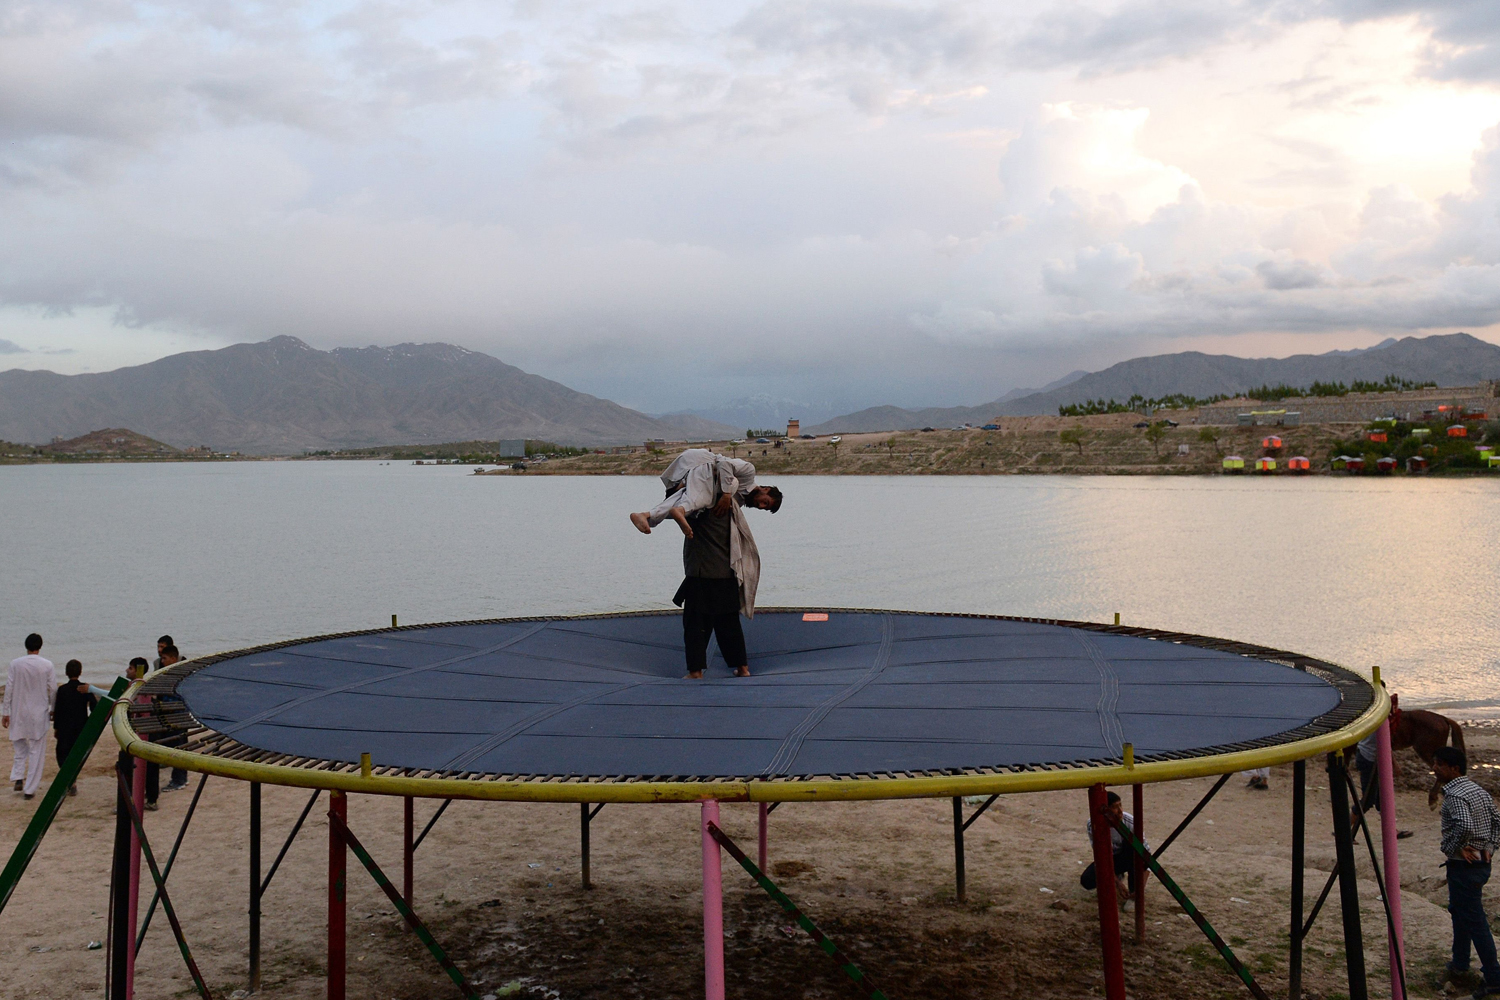 May 9, 2014. Afghan youths wrestle on a trampoline on the banks of Qargha Lake in the outskirts of Kabul.